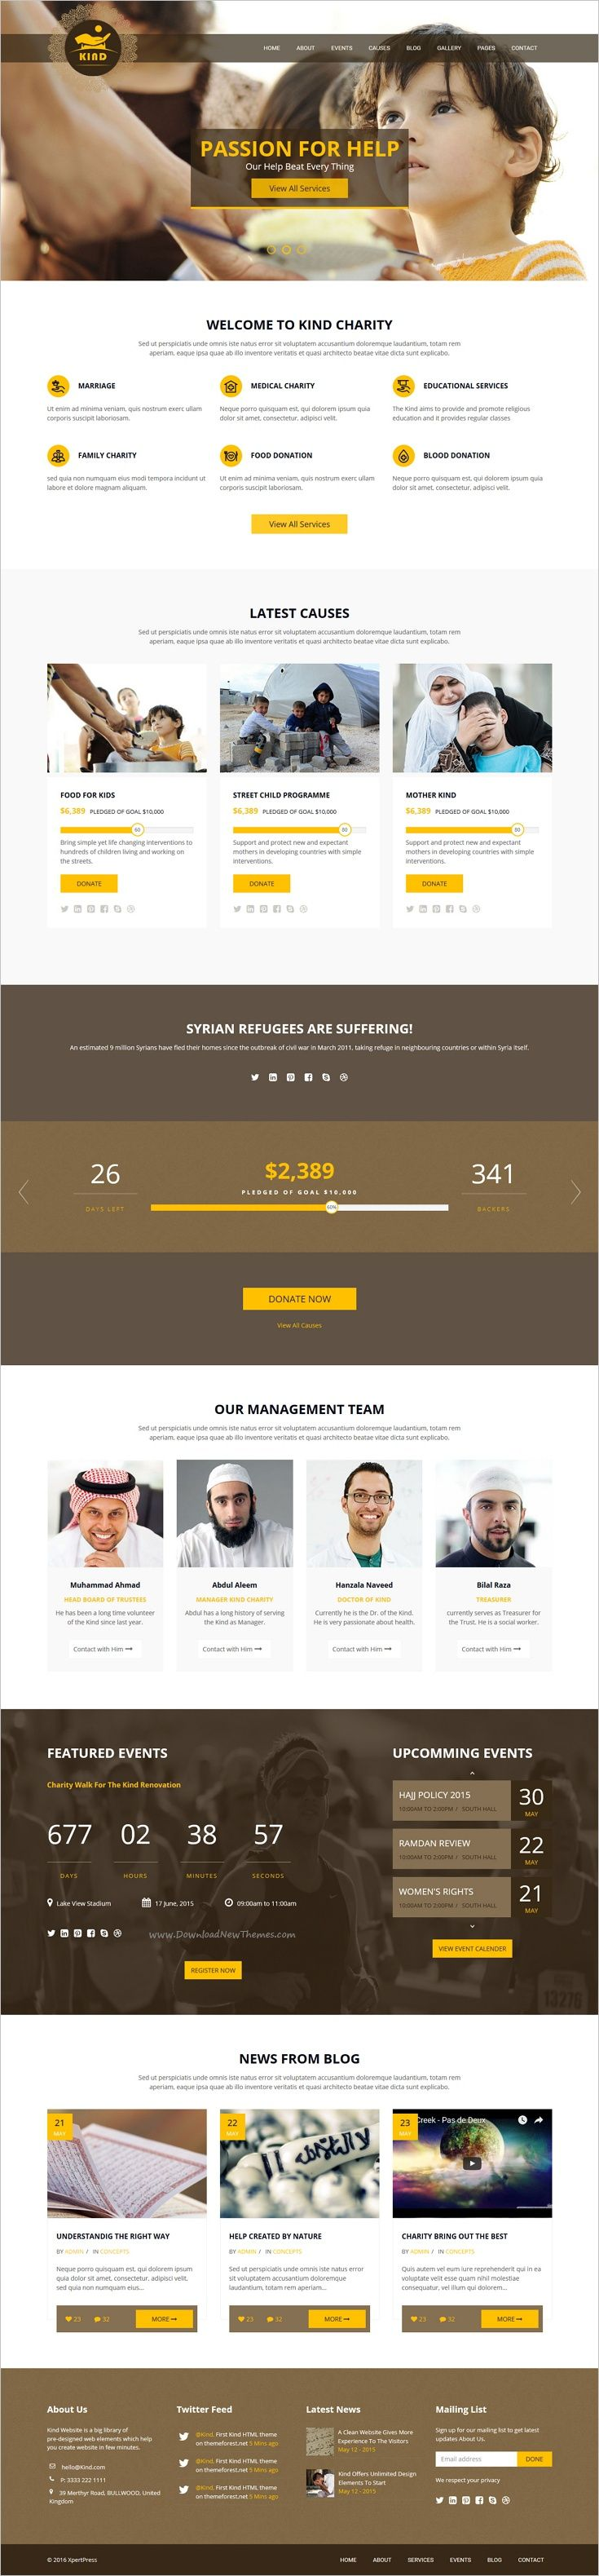 kind charity html template for mosque church and ngo charity